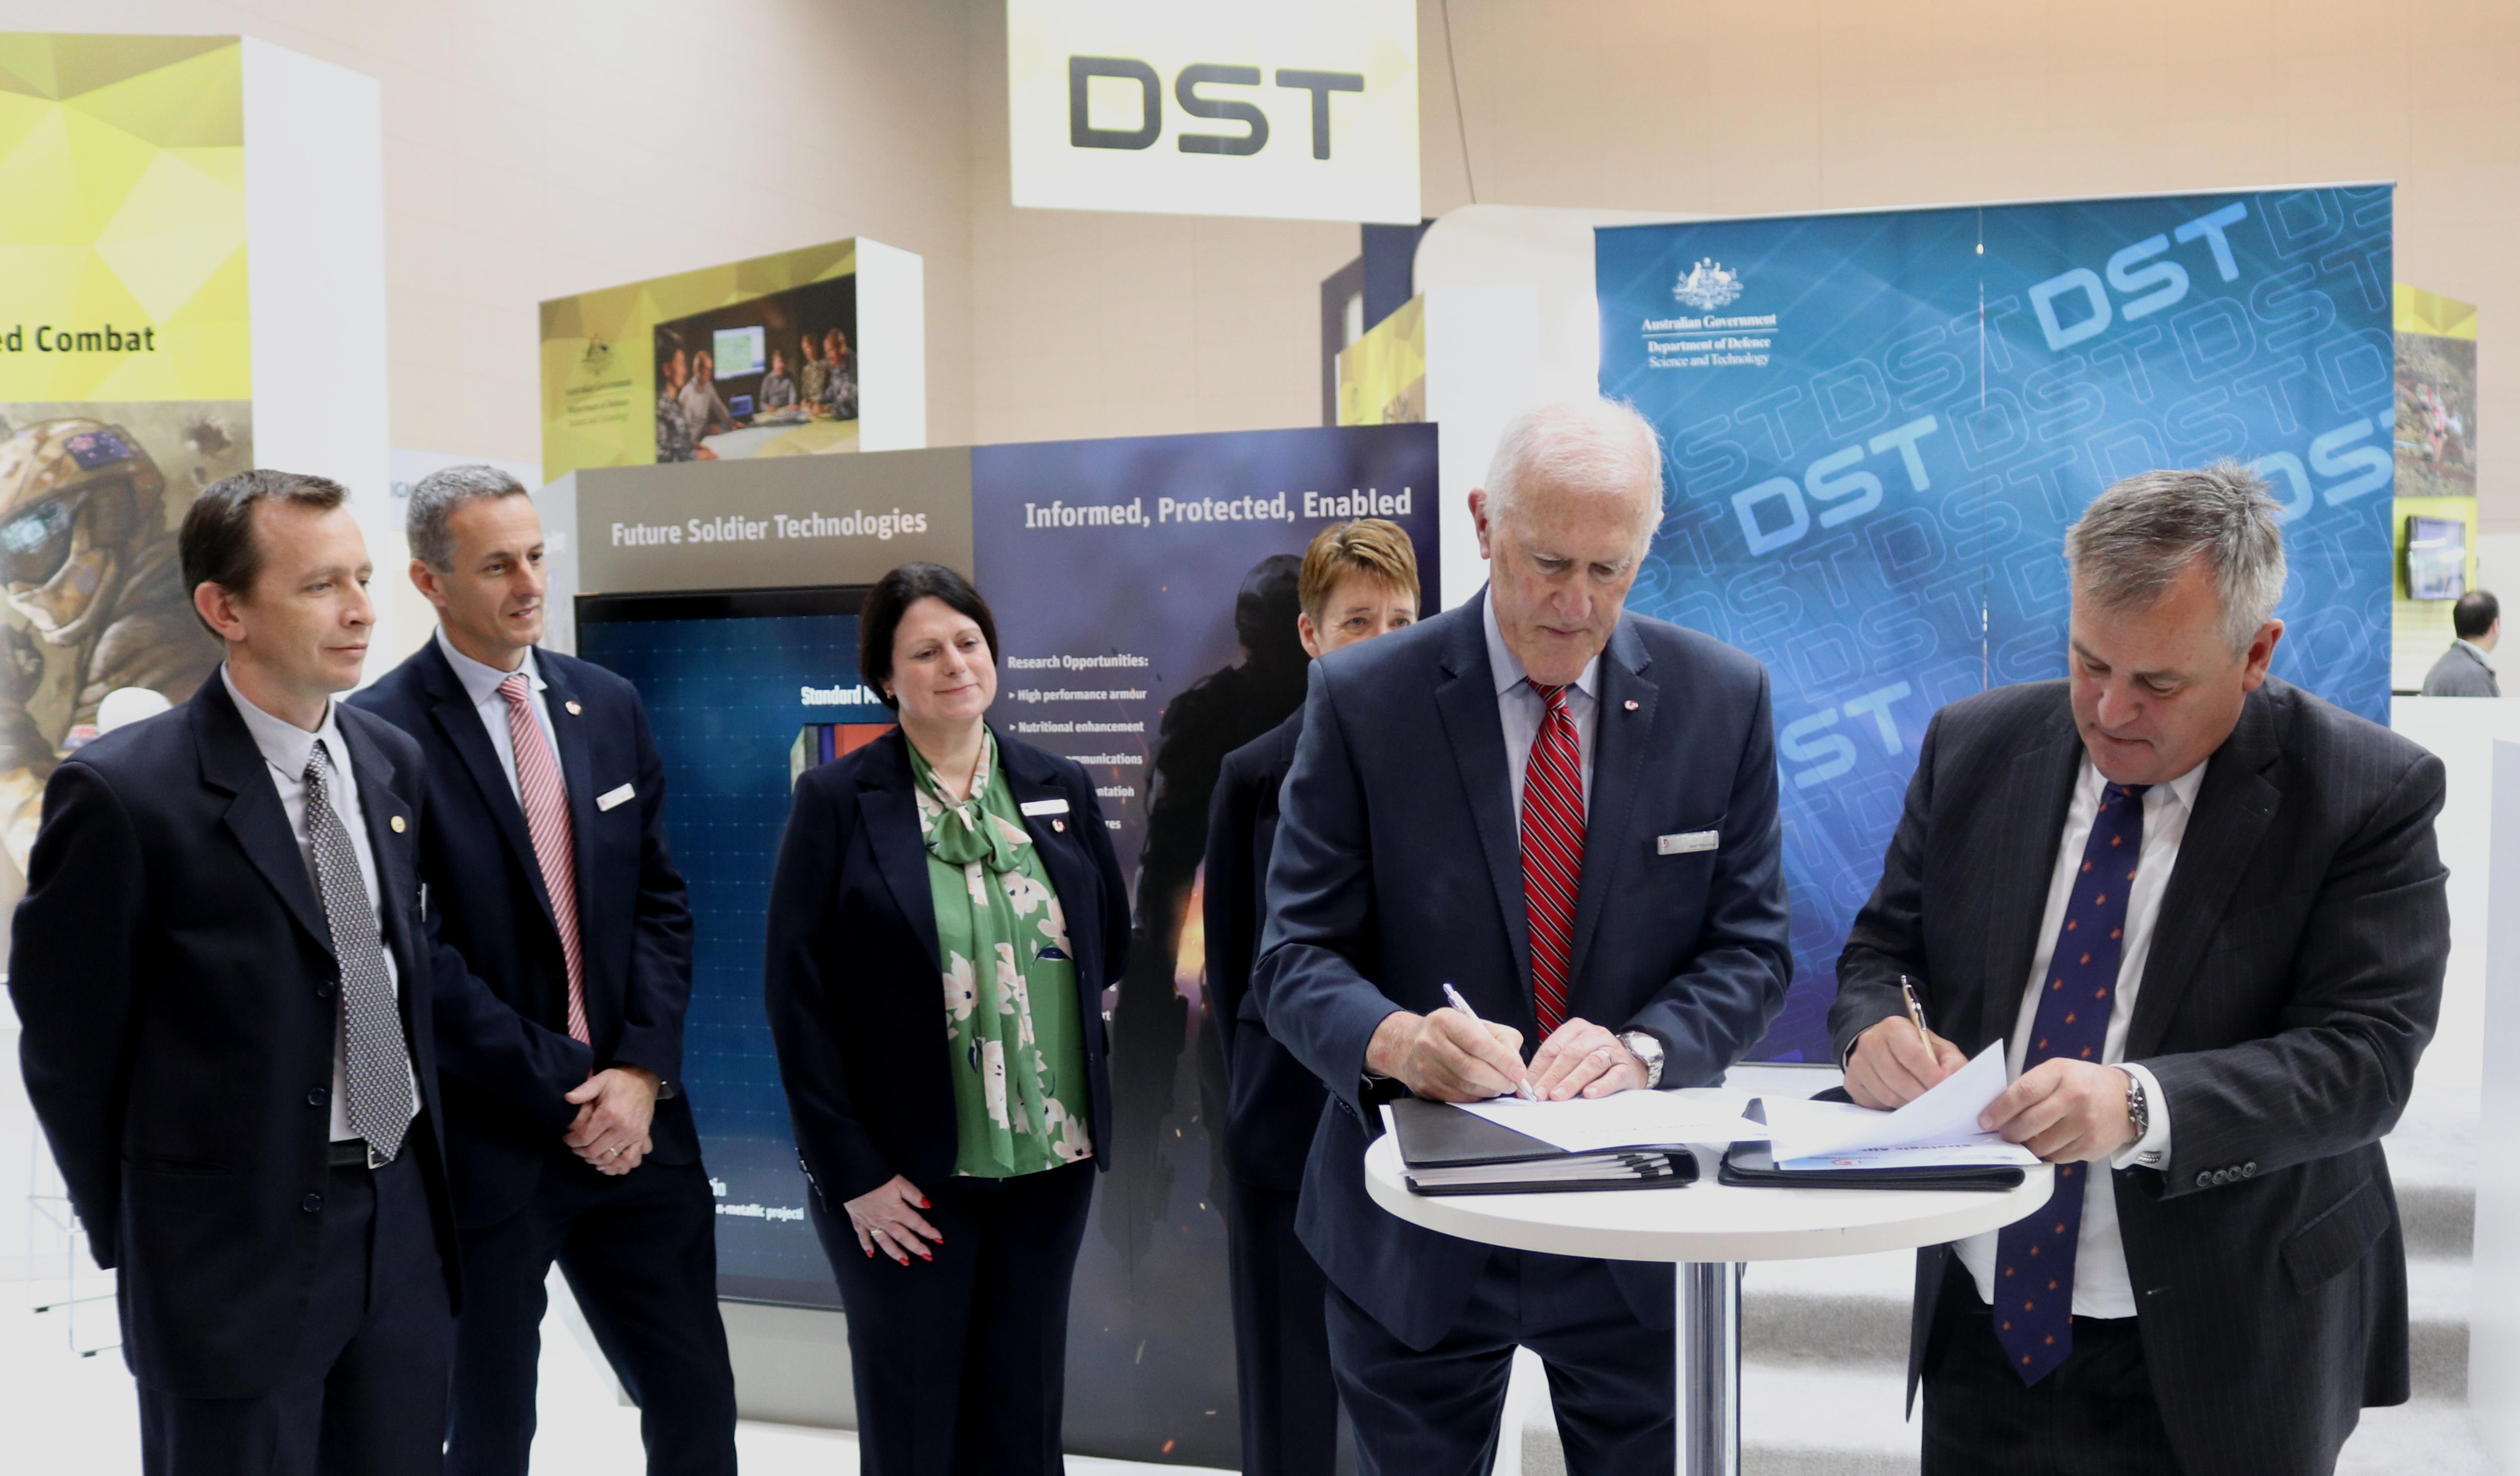 L3 Micreo   News   L3 Technologies signs strategic alliance with DST